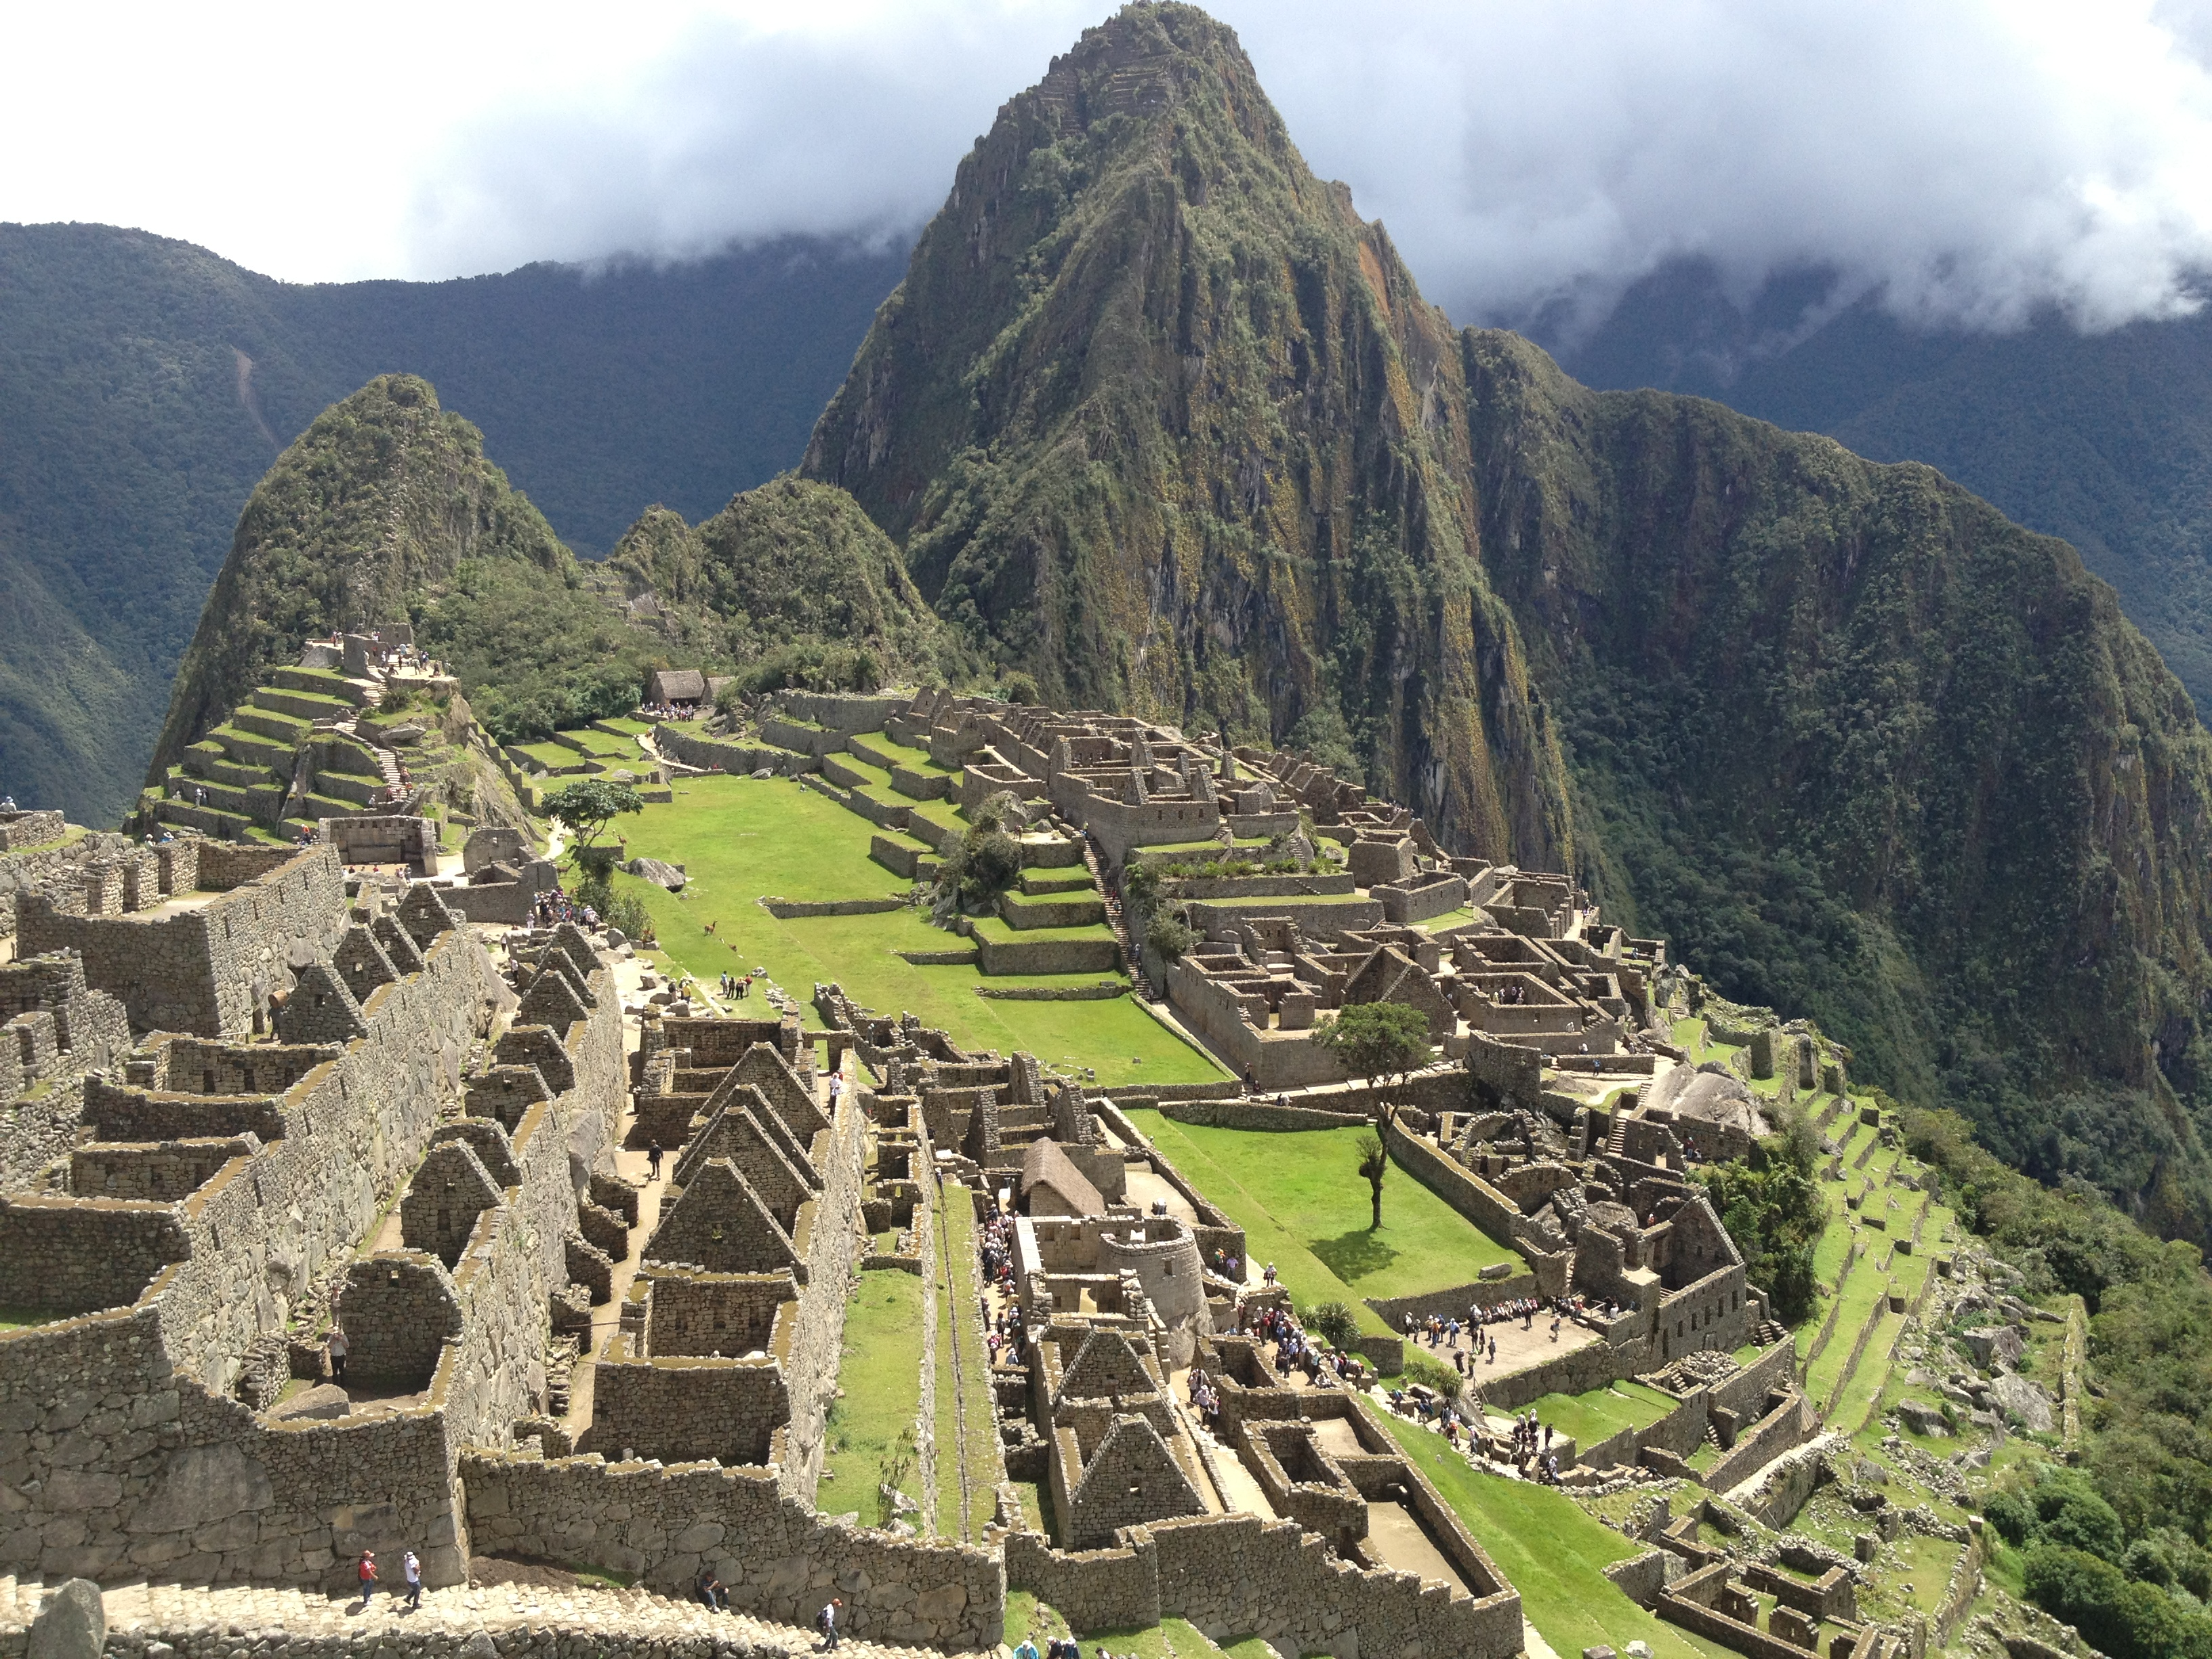 """incas empire The great inca empire of south america was dominated by the great mountain range of the snow-capped andes no other people built towns so high above sea level by about 1200 ce, the incas had grown from a small tribe living in the andes into an organized society united under one ruler, called """"the inca""""."""